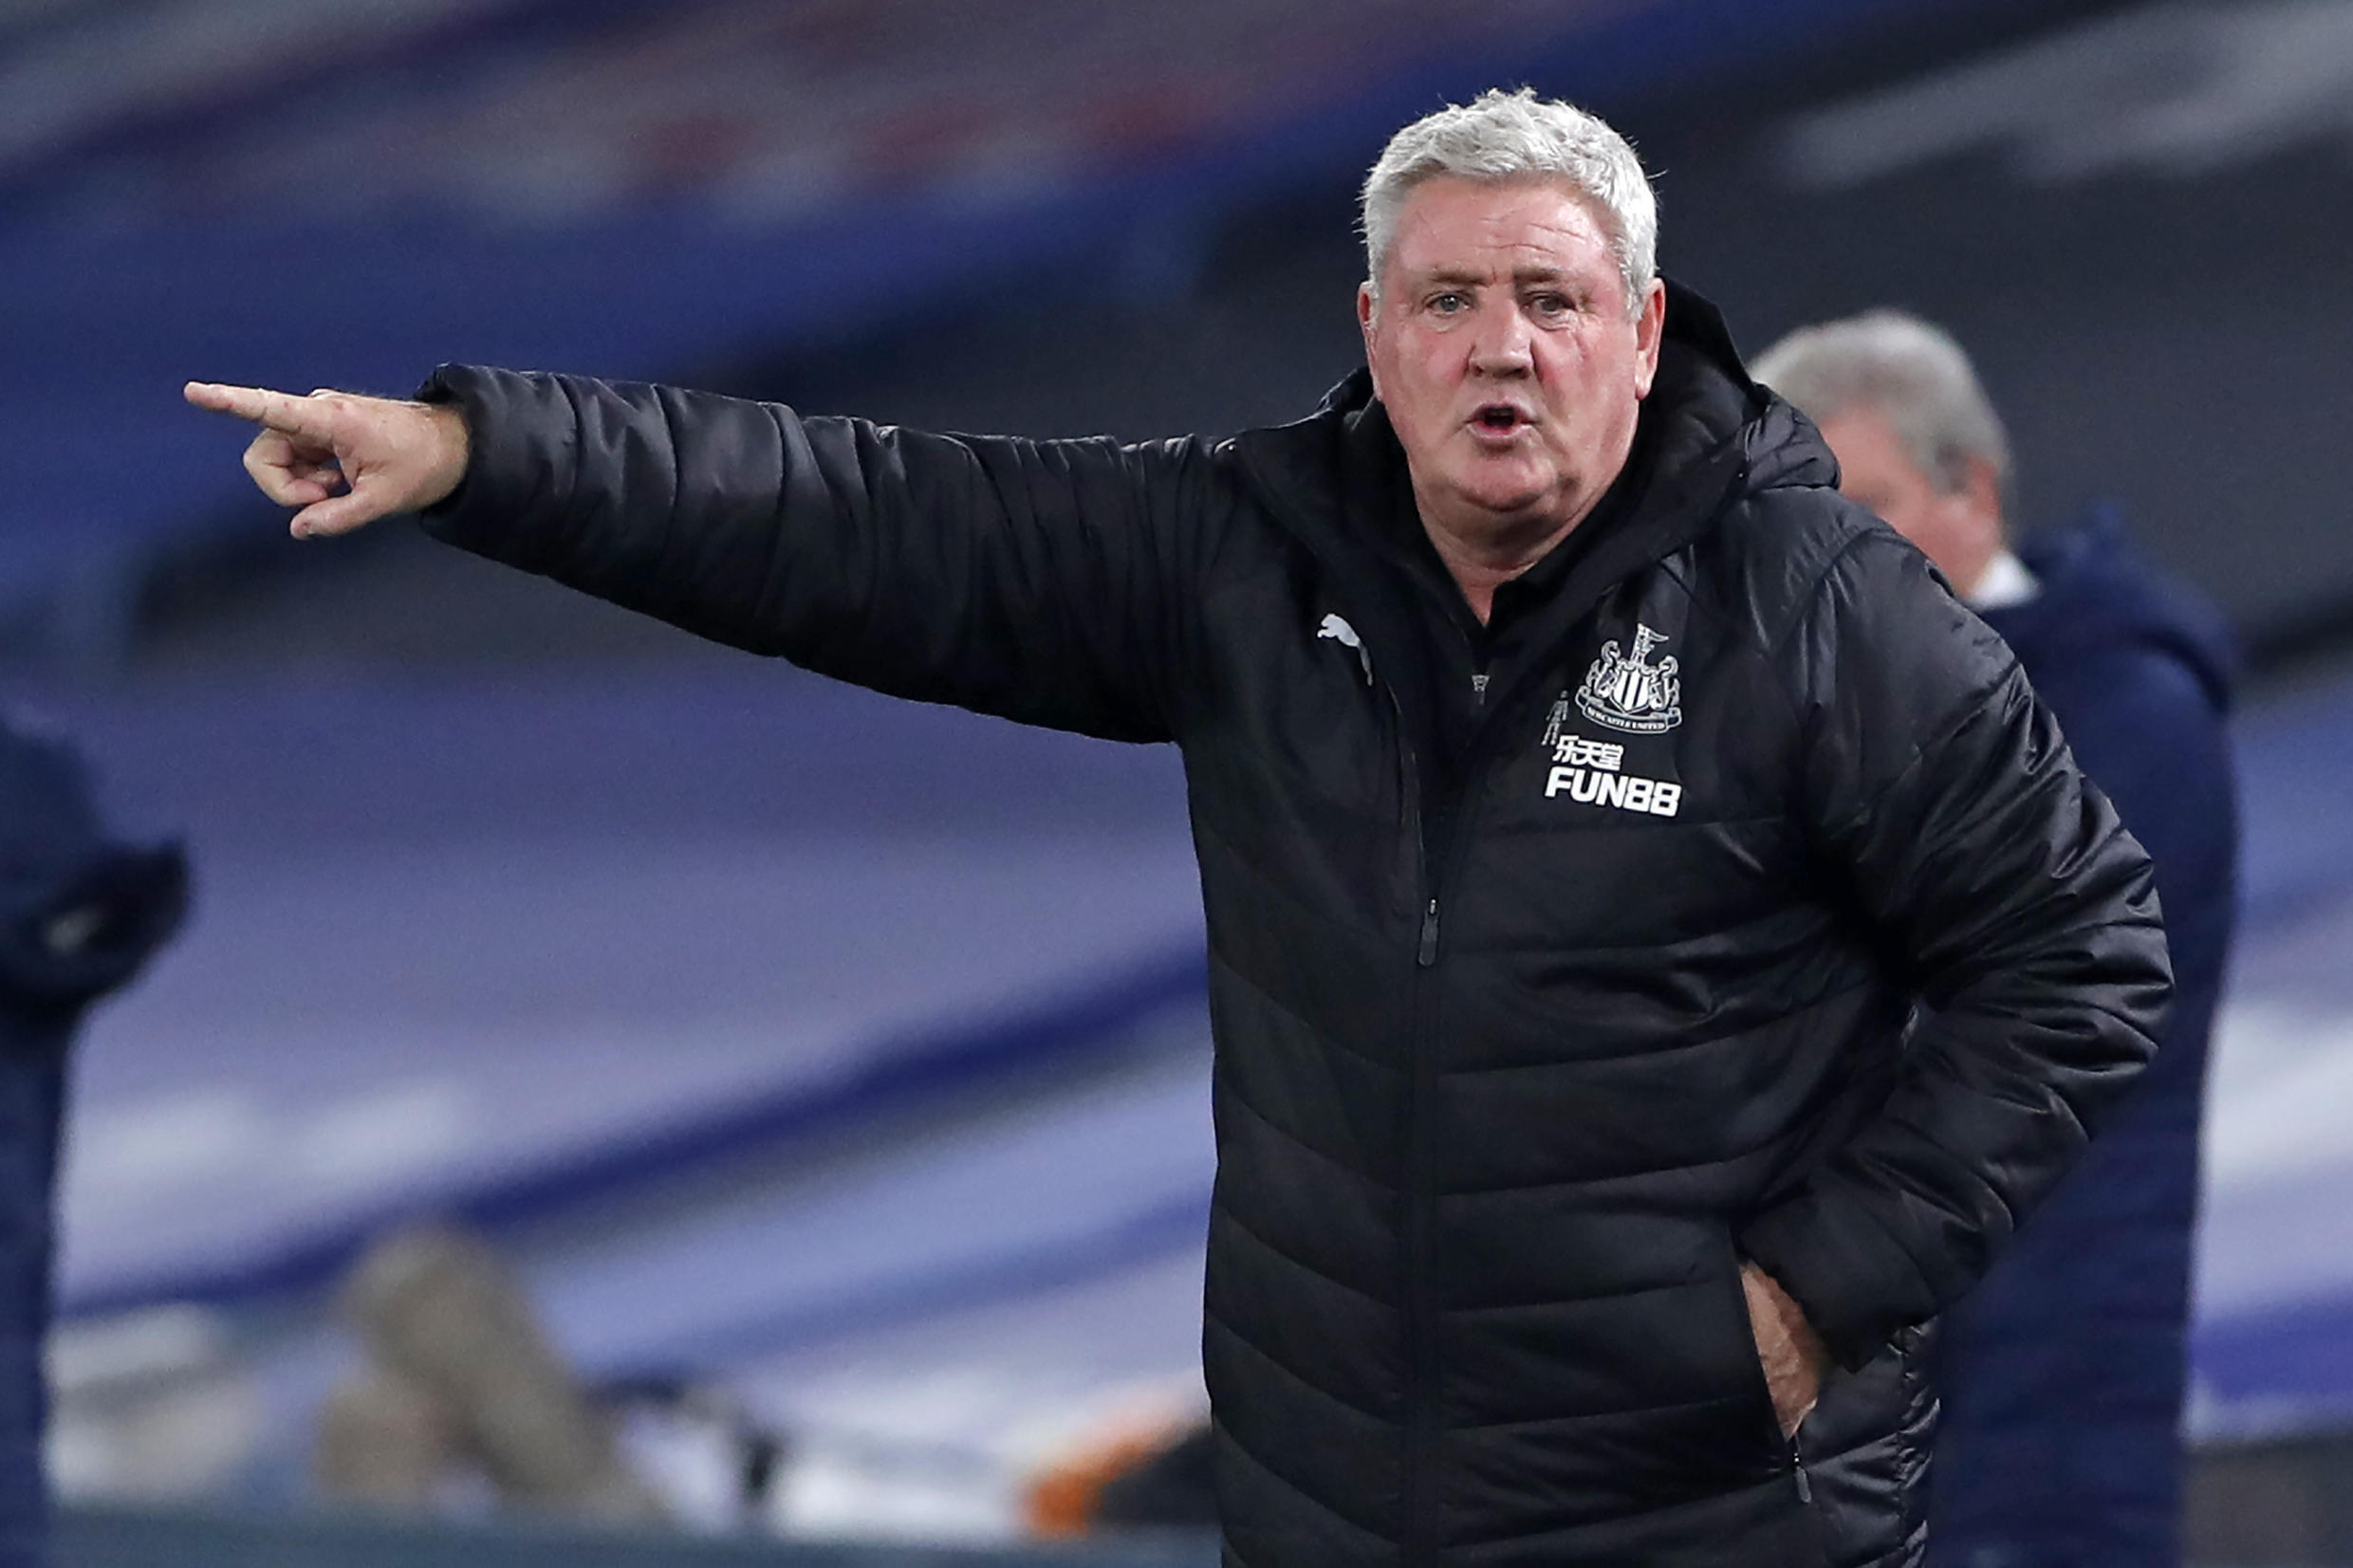 Newcastle United have been badly affected by a spate of positive tests for coronavirus with Steve Bruice cancelling training sessions and putting their next Premier League game against Aston Villa under threat according to British media reports